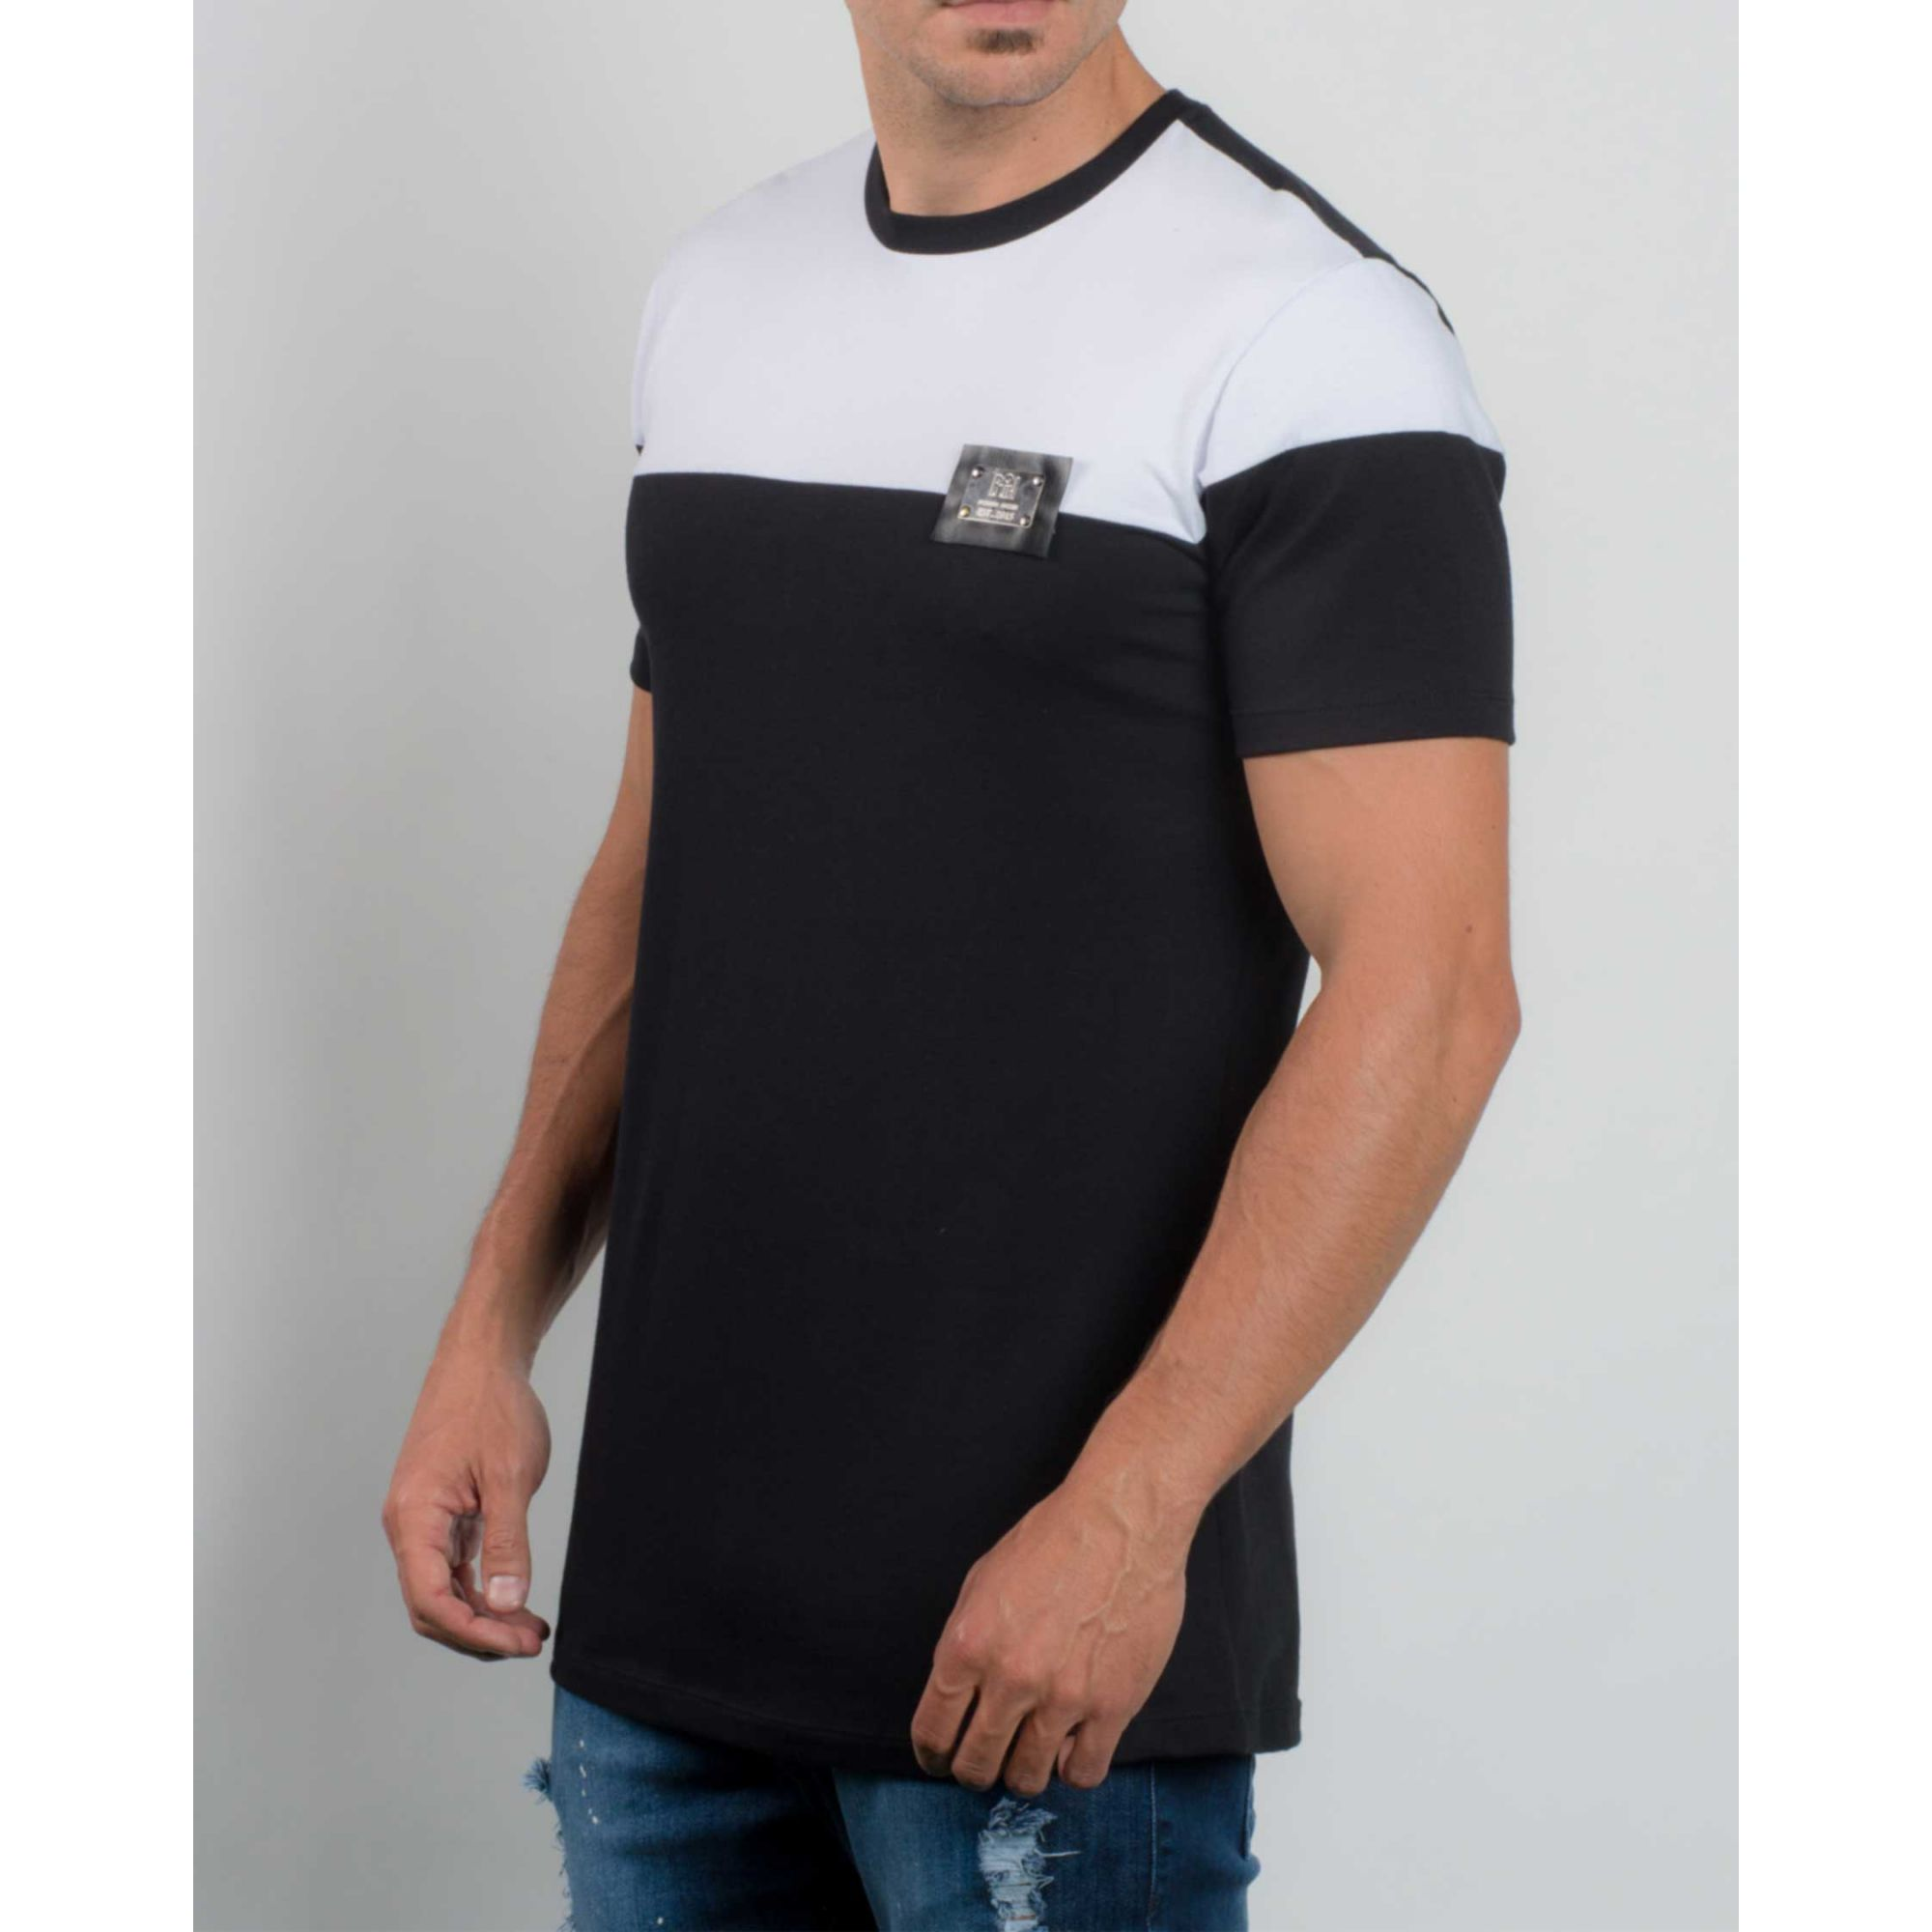 Camiseta Buh Bicolor Metal White & Black